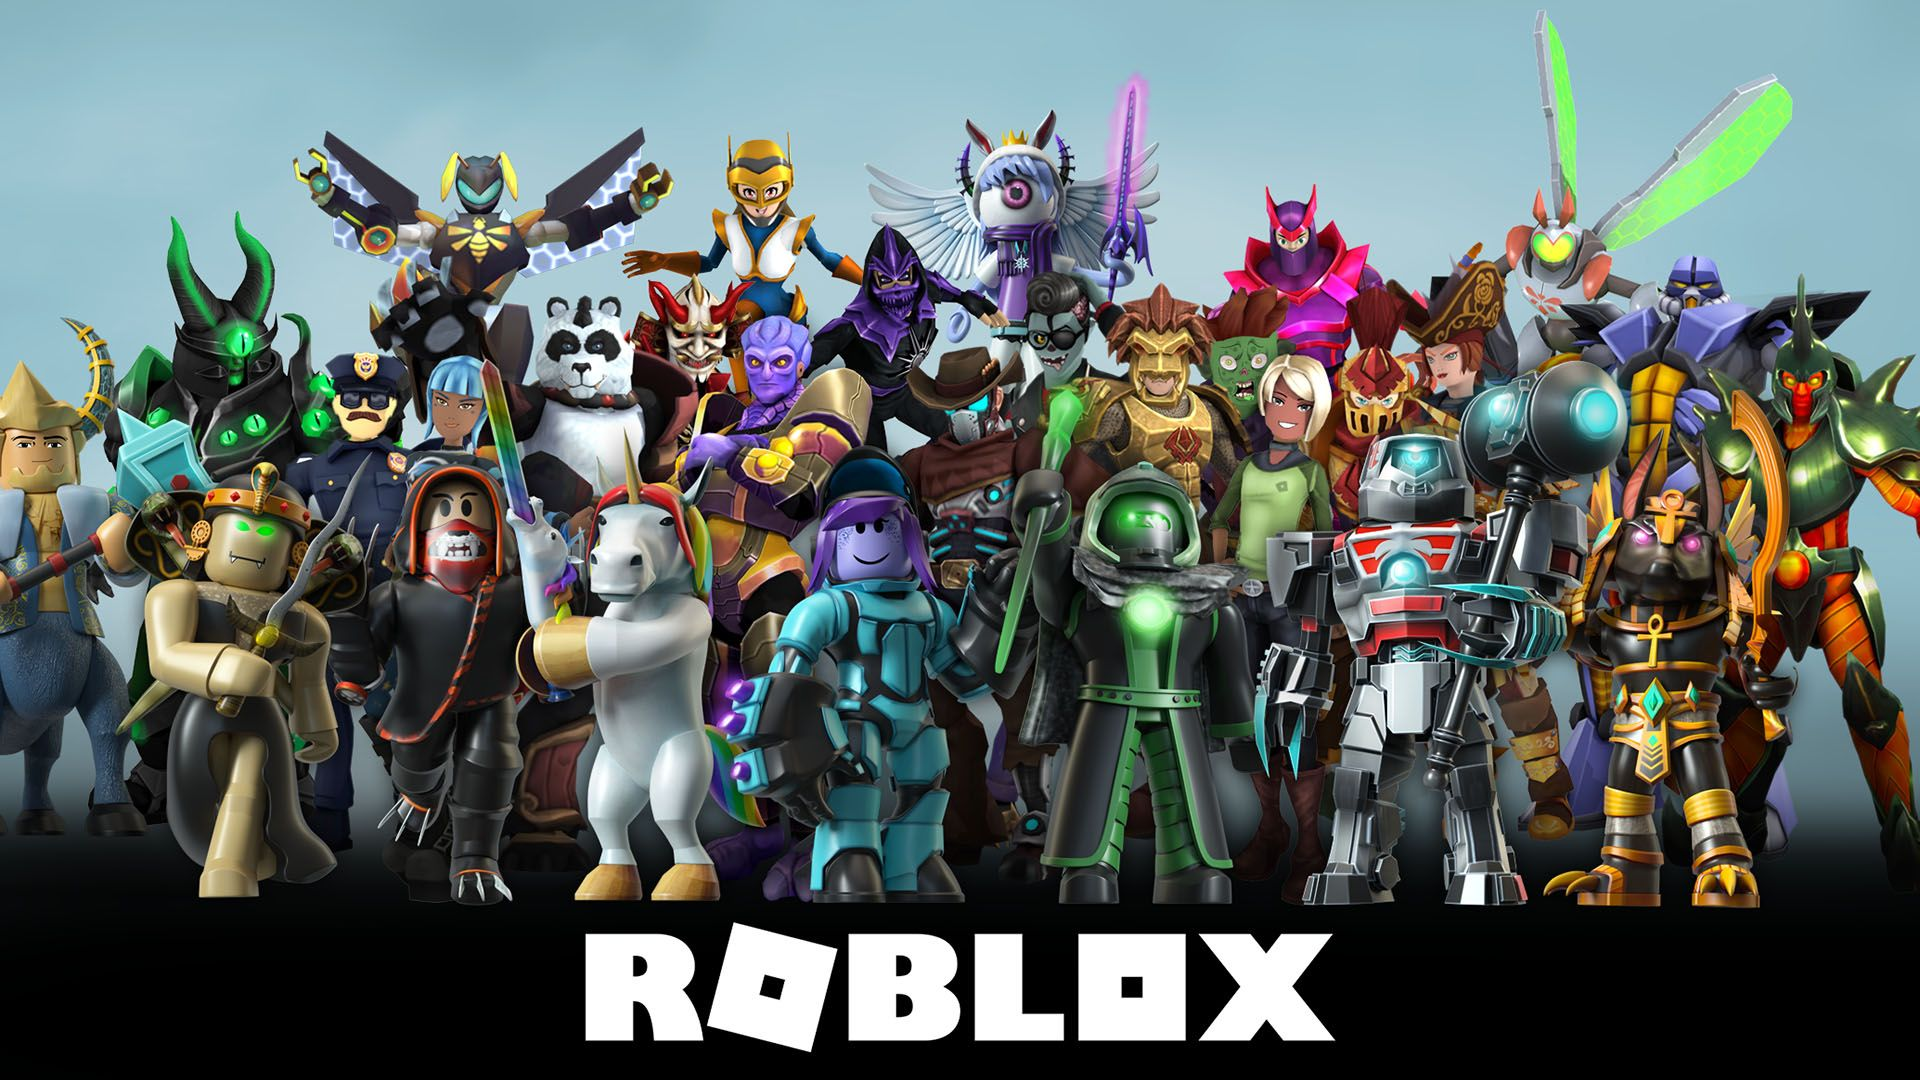 Wallpaper Roblox Kolpaper Awesome Free Hd Wallpapers If you have your own one, just send us the image and we will show it on the. wallpaper roblox kolpaper awesome